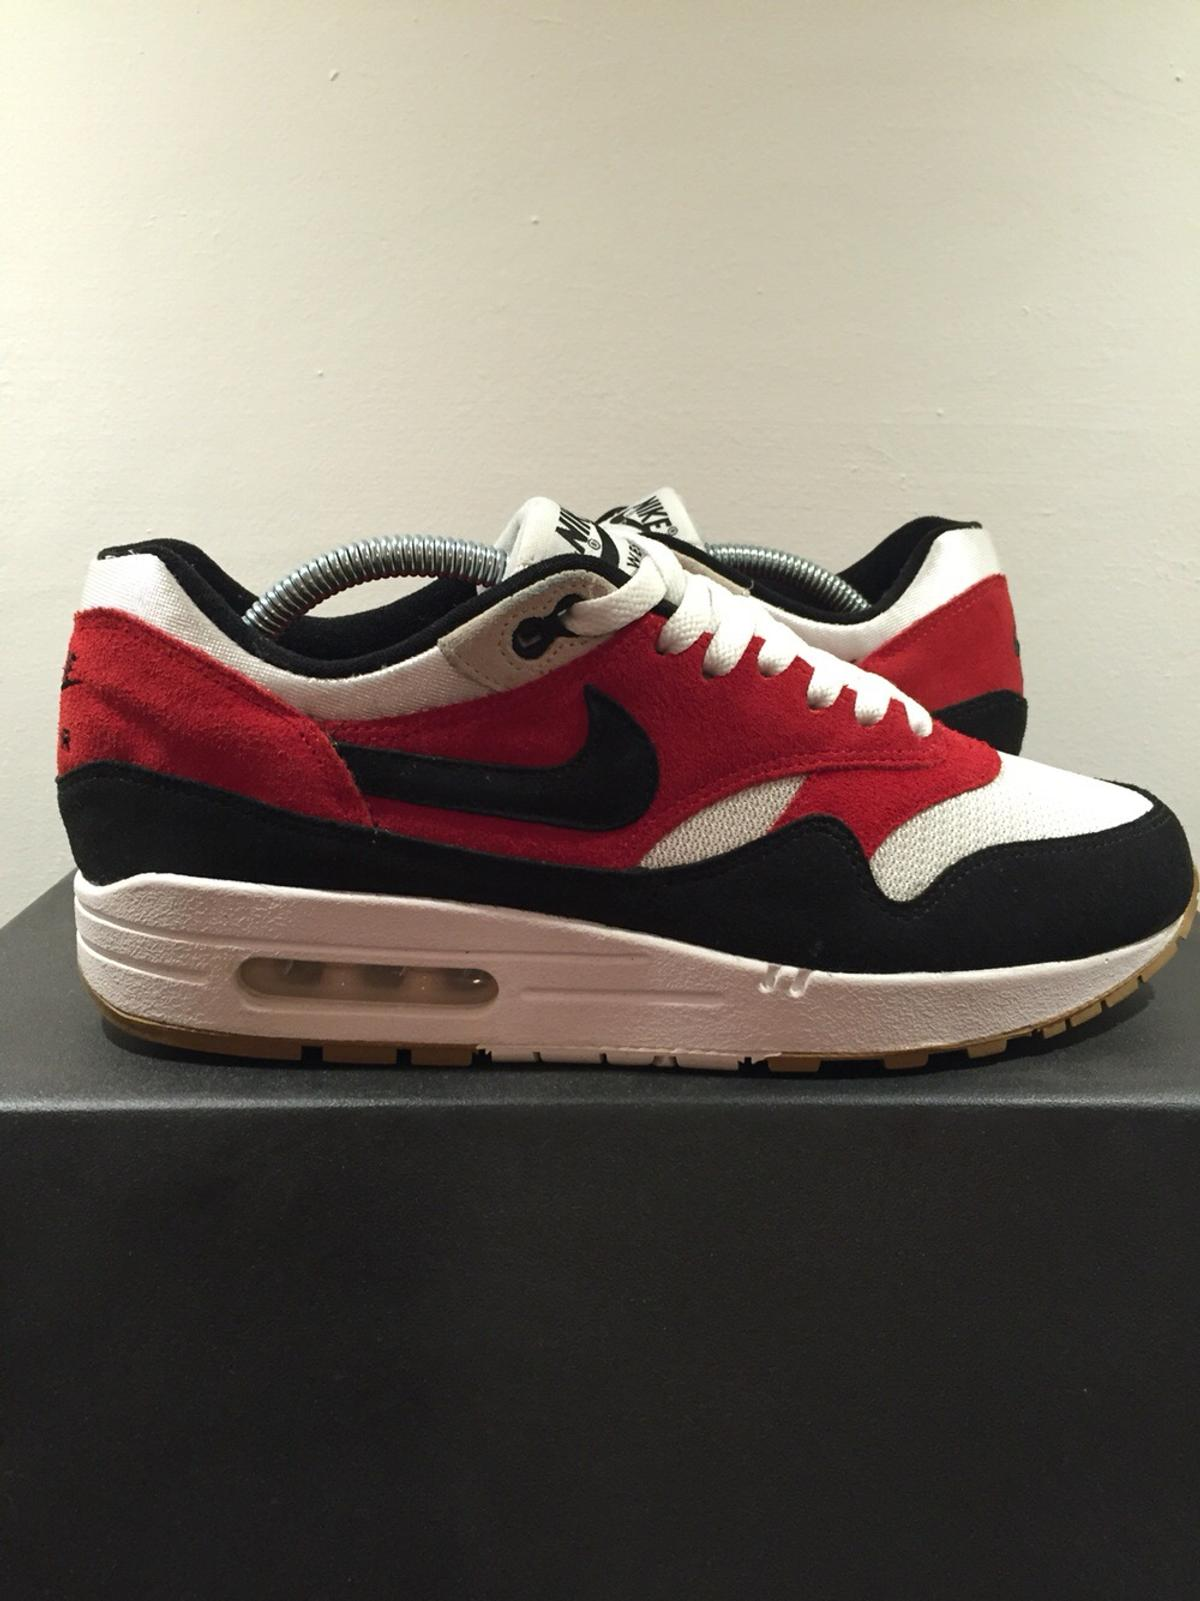 Nike air max 1 west in M40 Manchester for £140.00 for sale